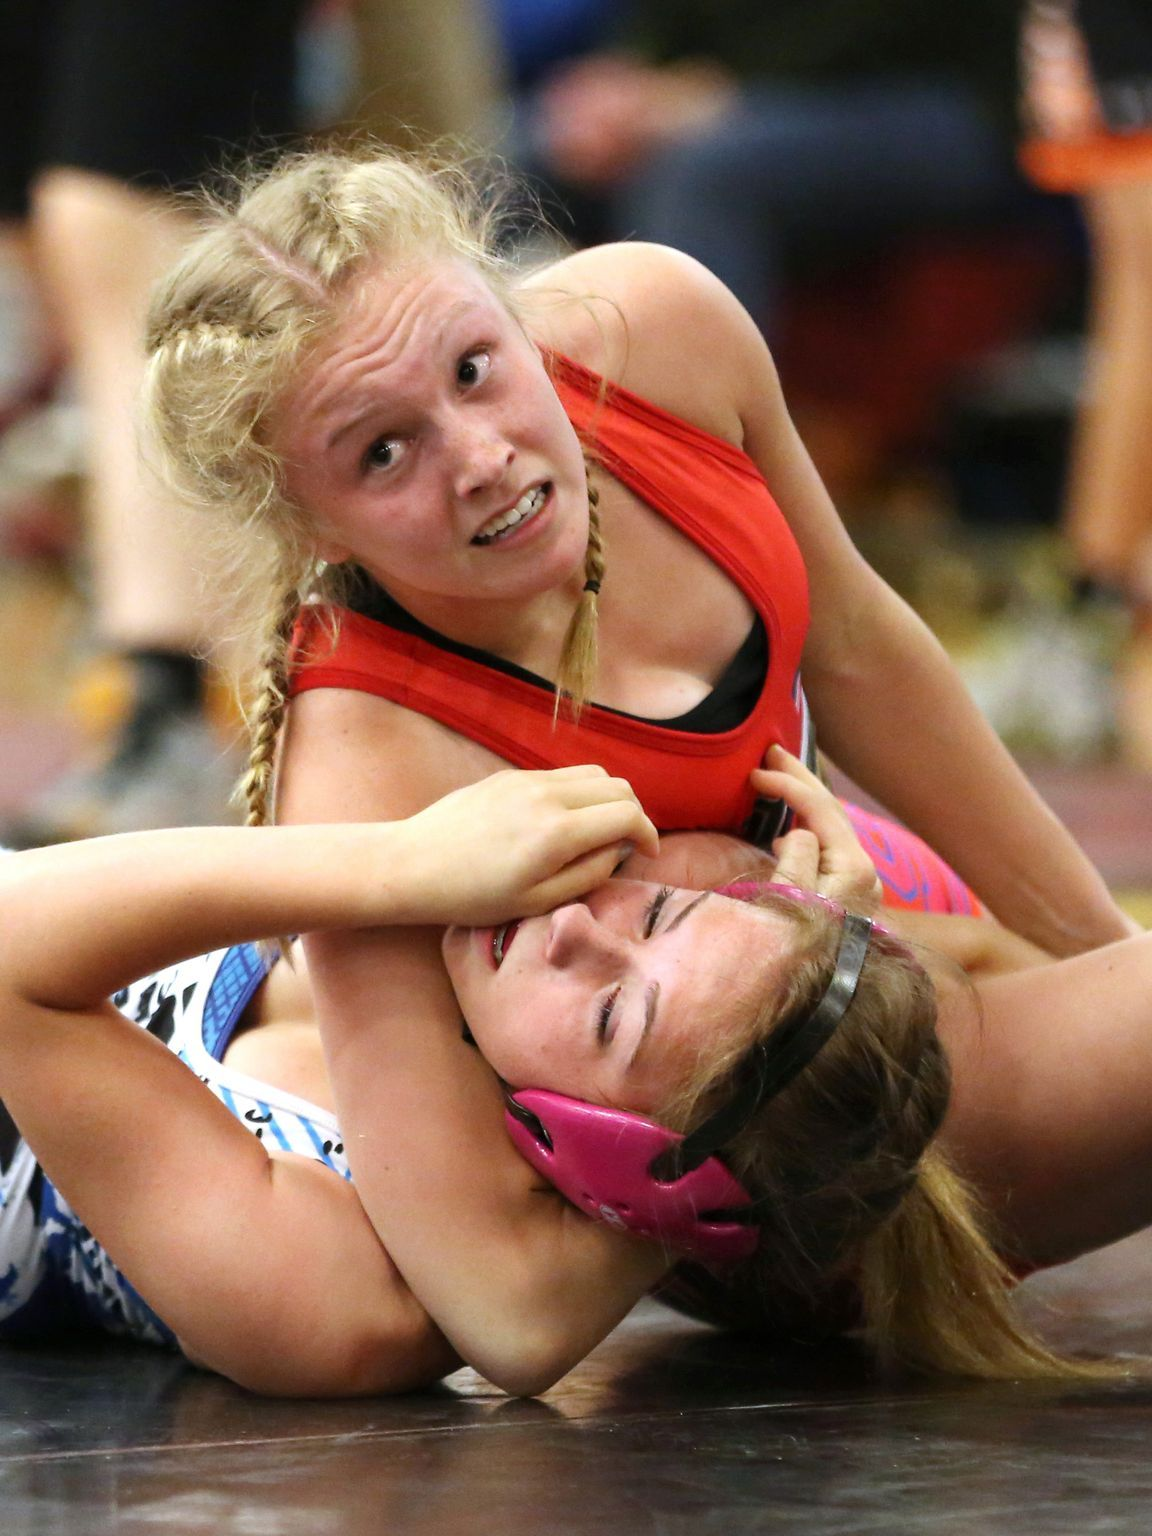 Grappling girls headlock